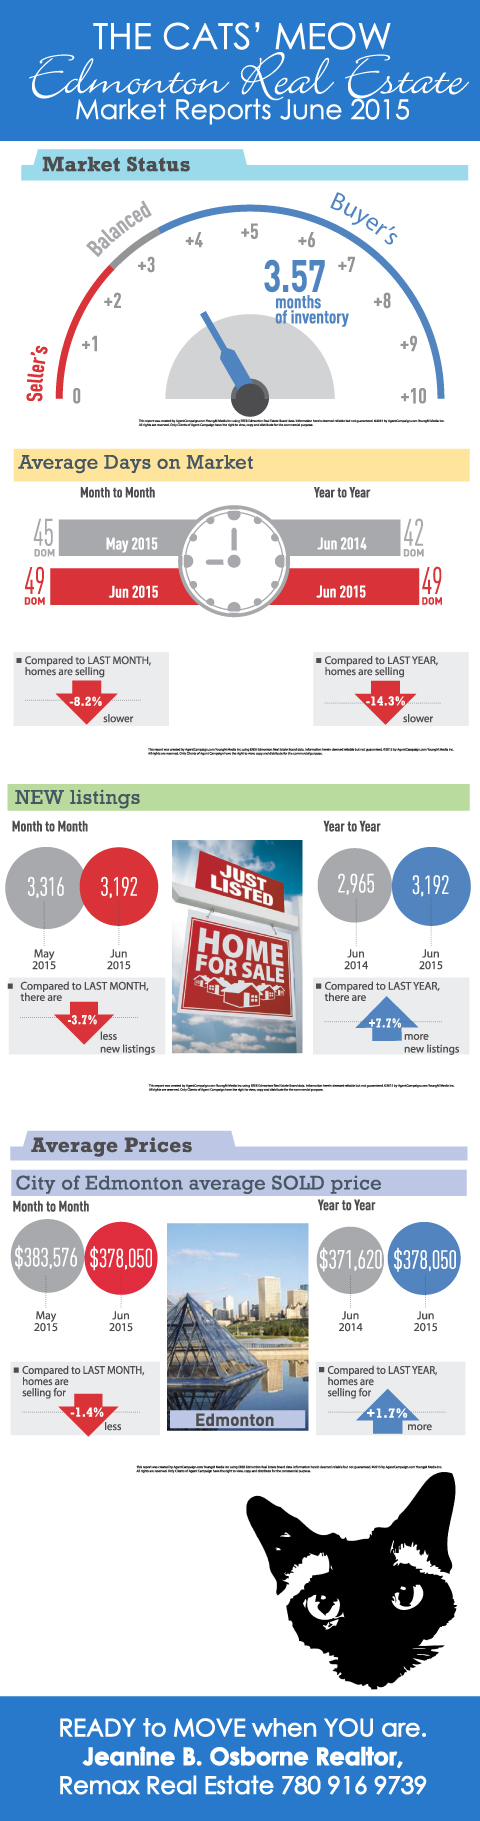 Edmonton-Real-Estate-Market-Report-June-2015